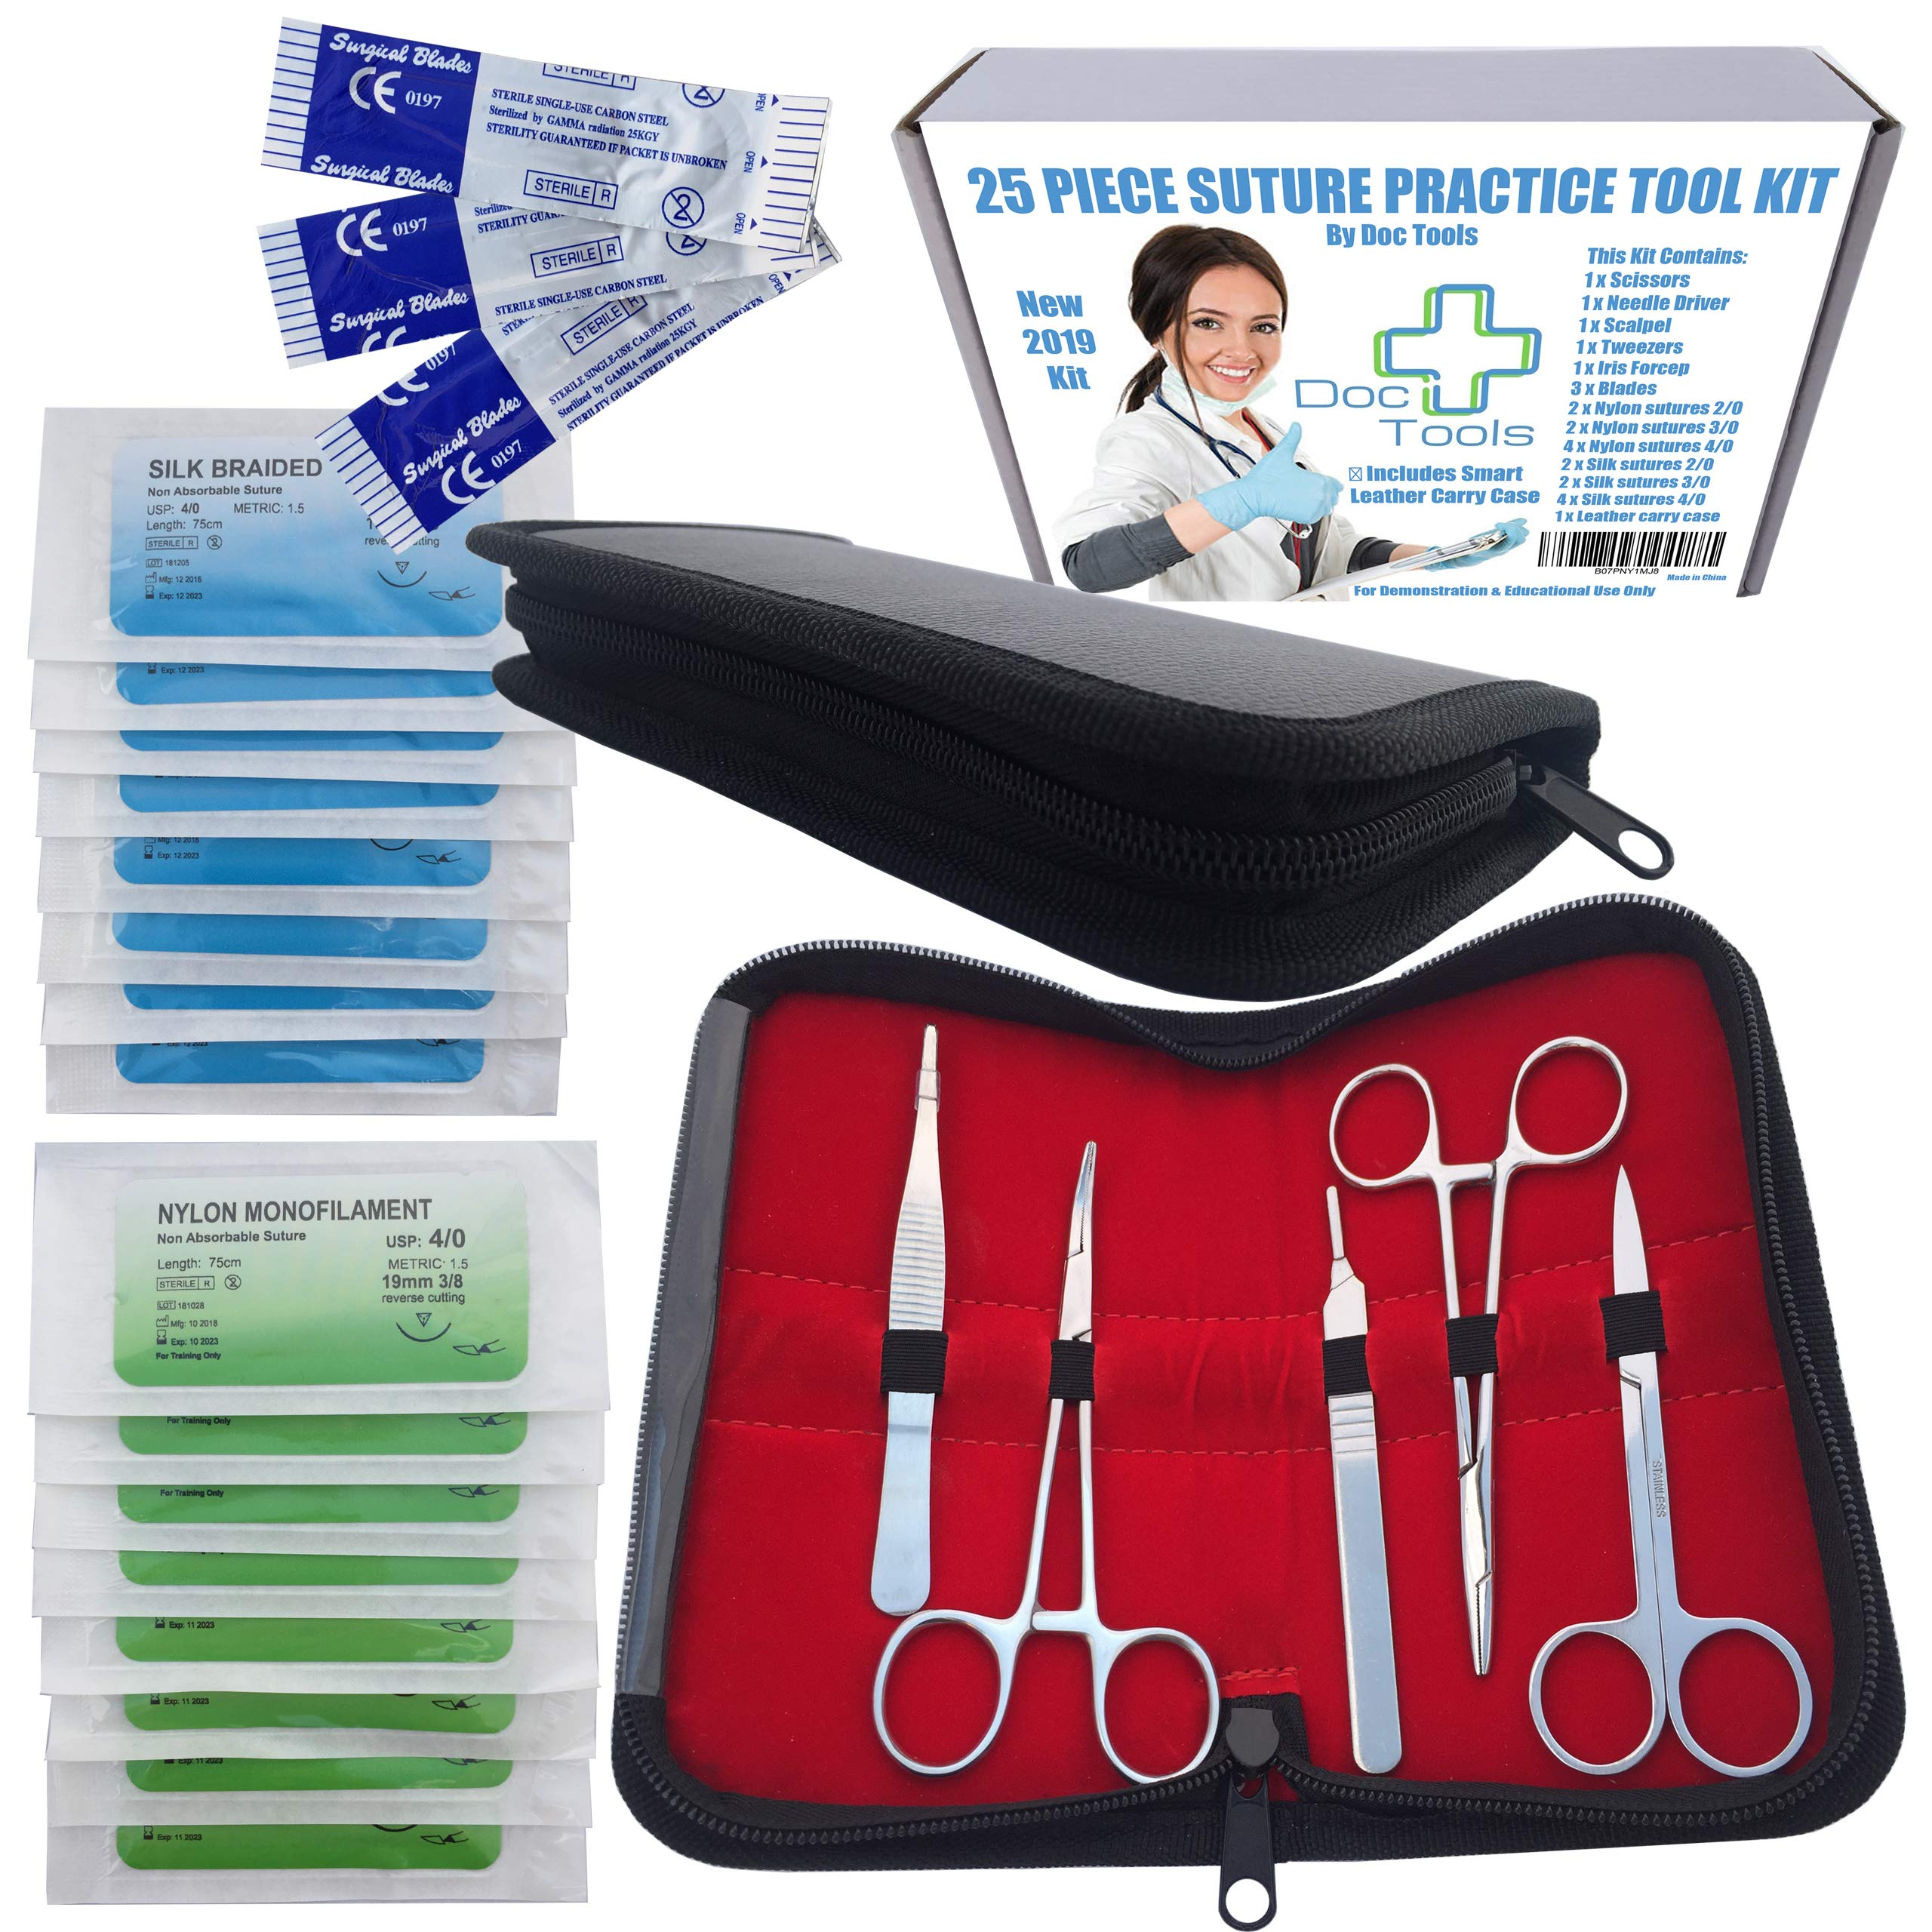 25 Piece Stainless Steel Suture Pad Practice Tool Kit - by Doc Tools | for Suture Training Medical Students Nurses Doctors Vets Education Comes in Smart Leather Case by Doc Tools